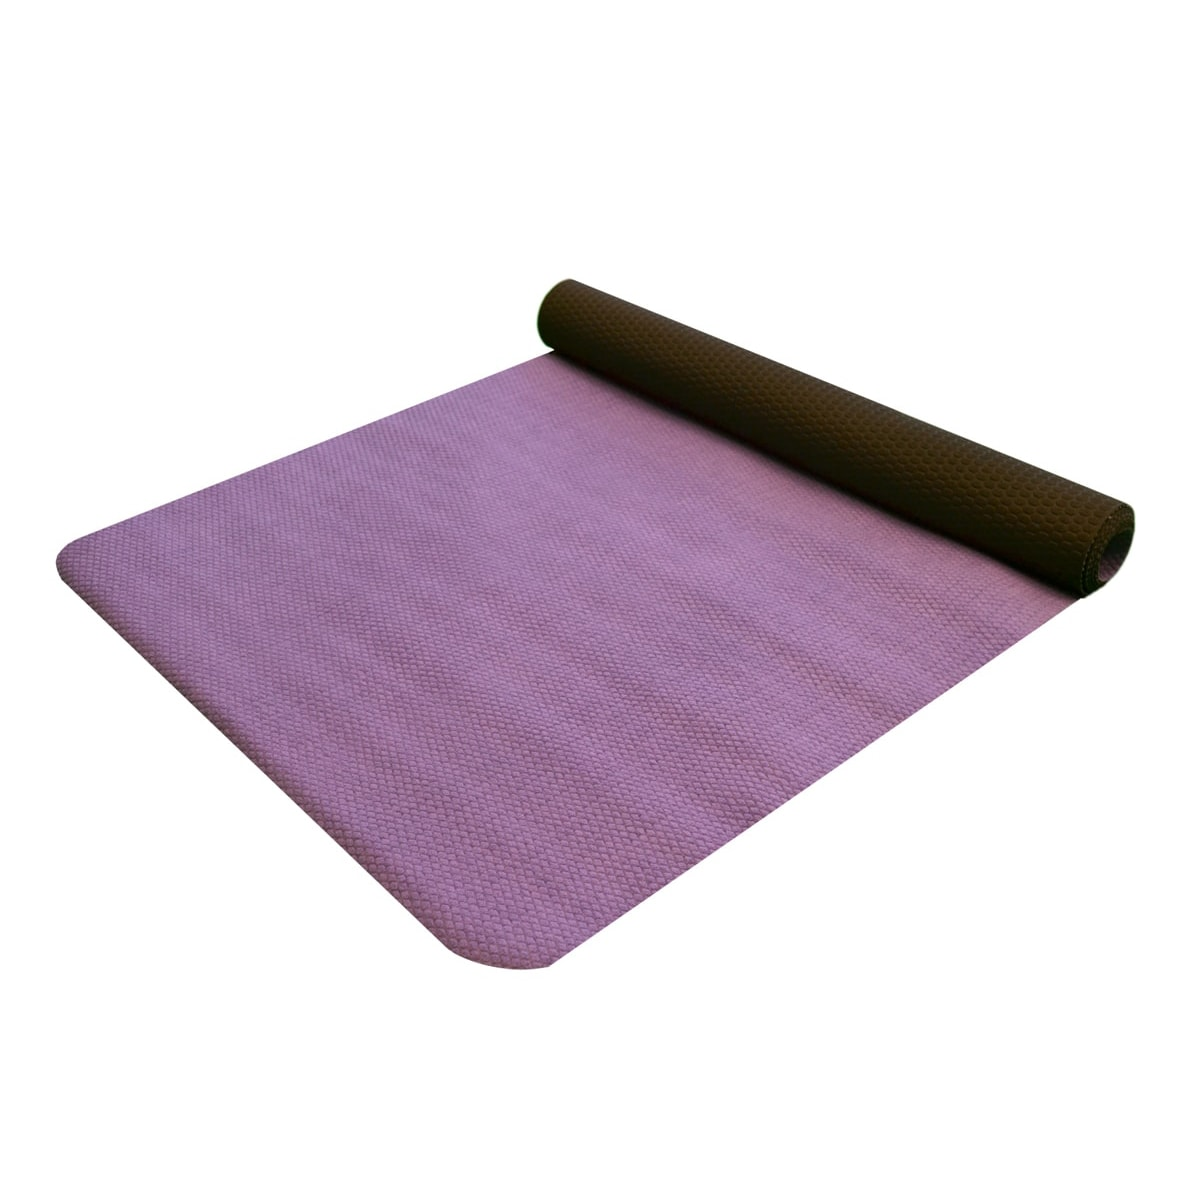 Yoga Towel Uk: Hot Yoga Mat Towel